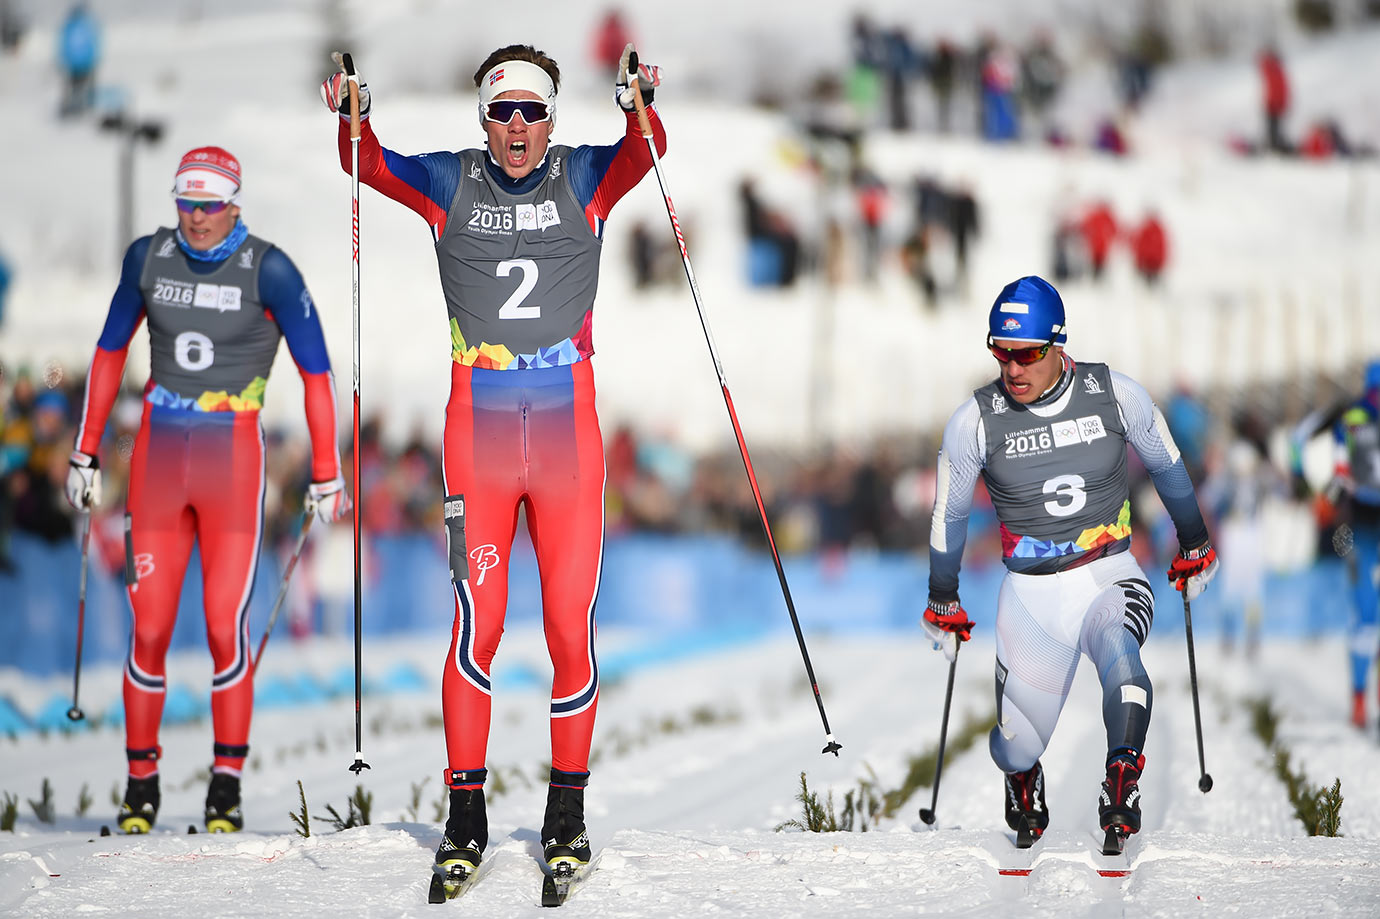 Thomas Helland Larsen (NOR) crosses the finish line to win the Gold Medal in the Cross-Country Skiing Men's Sprint Classic at Birkebeineren Cross-Country Stadium on Feb. 16, 2016 during the Winter Youth Olympic Games in Lillehammer, Norway.